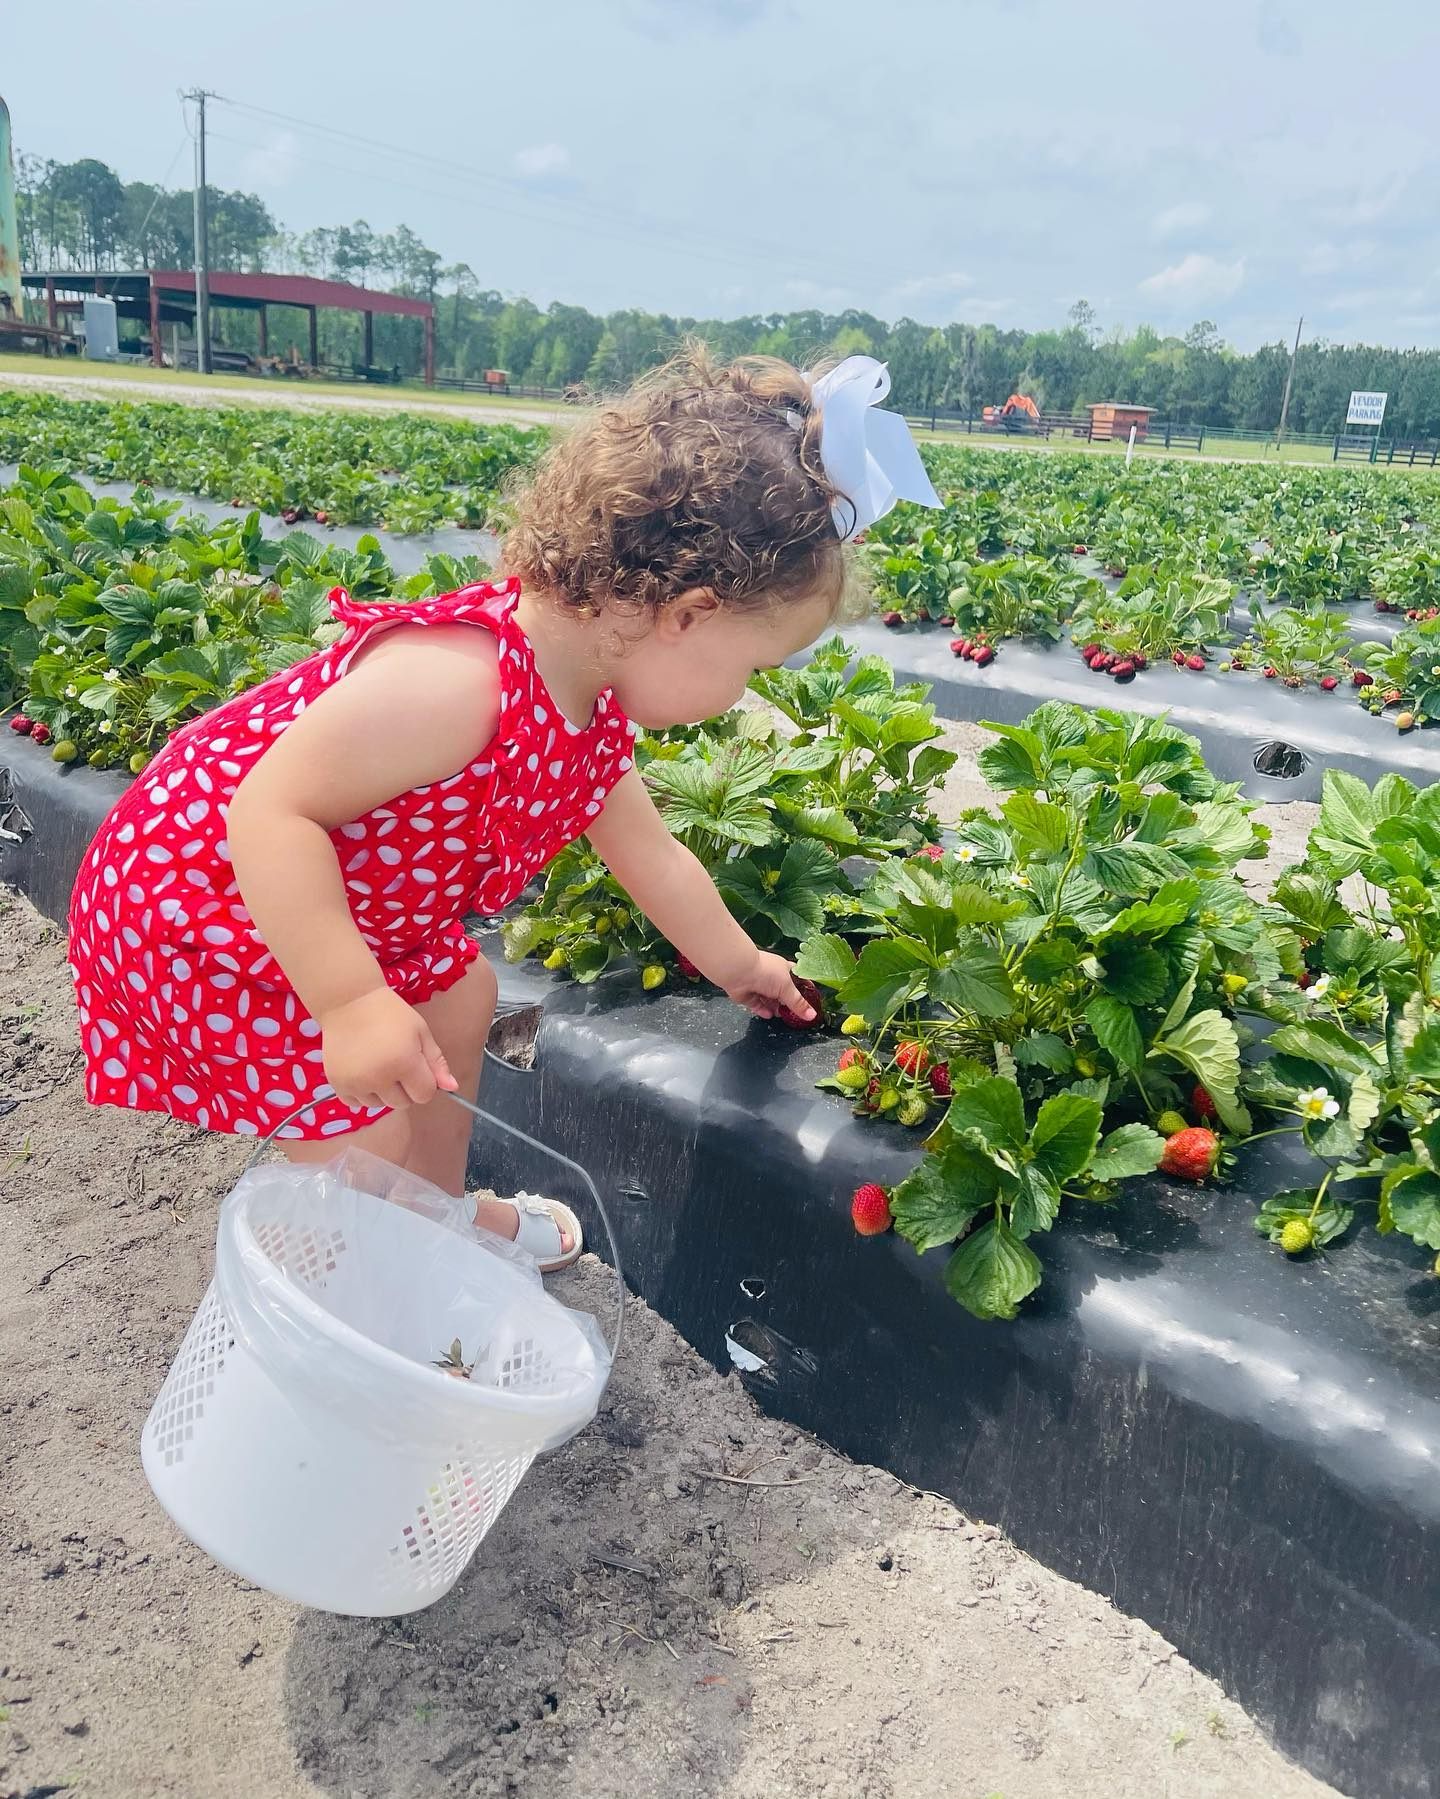 A fun family activity is picking strawberries at Ottawa farms!  Check out their Facebook page for hours!  #ebrsavannah #savannahrealestate